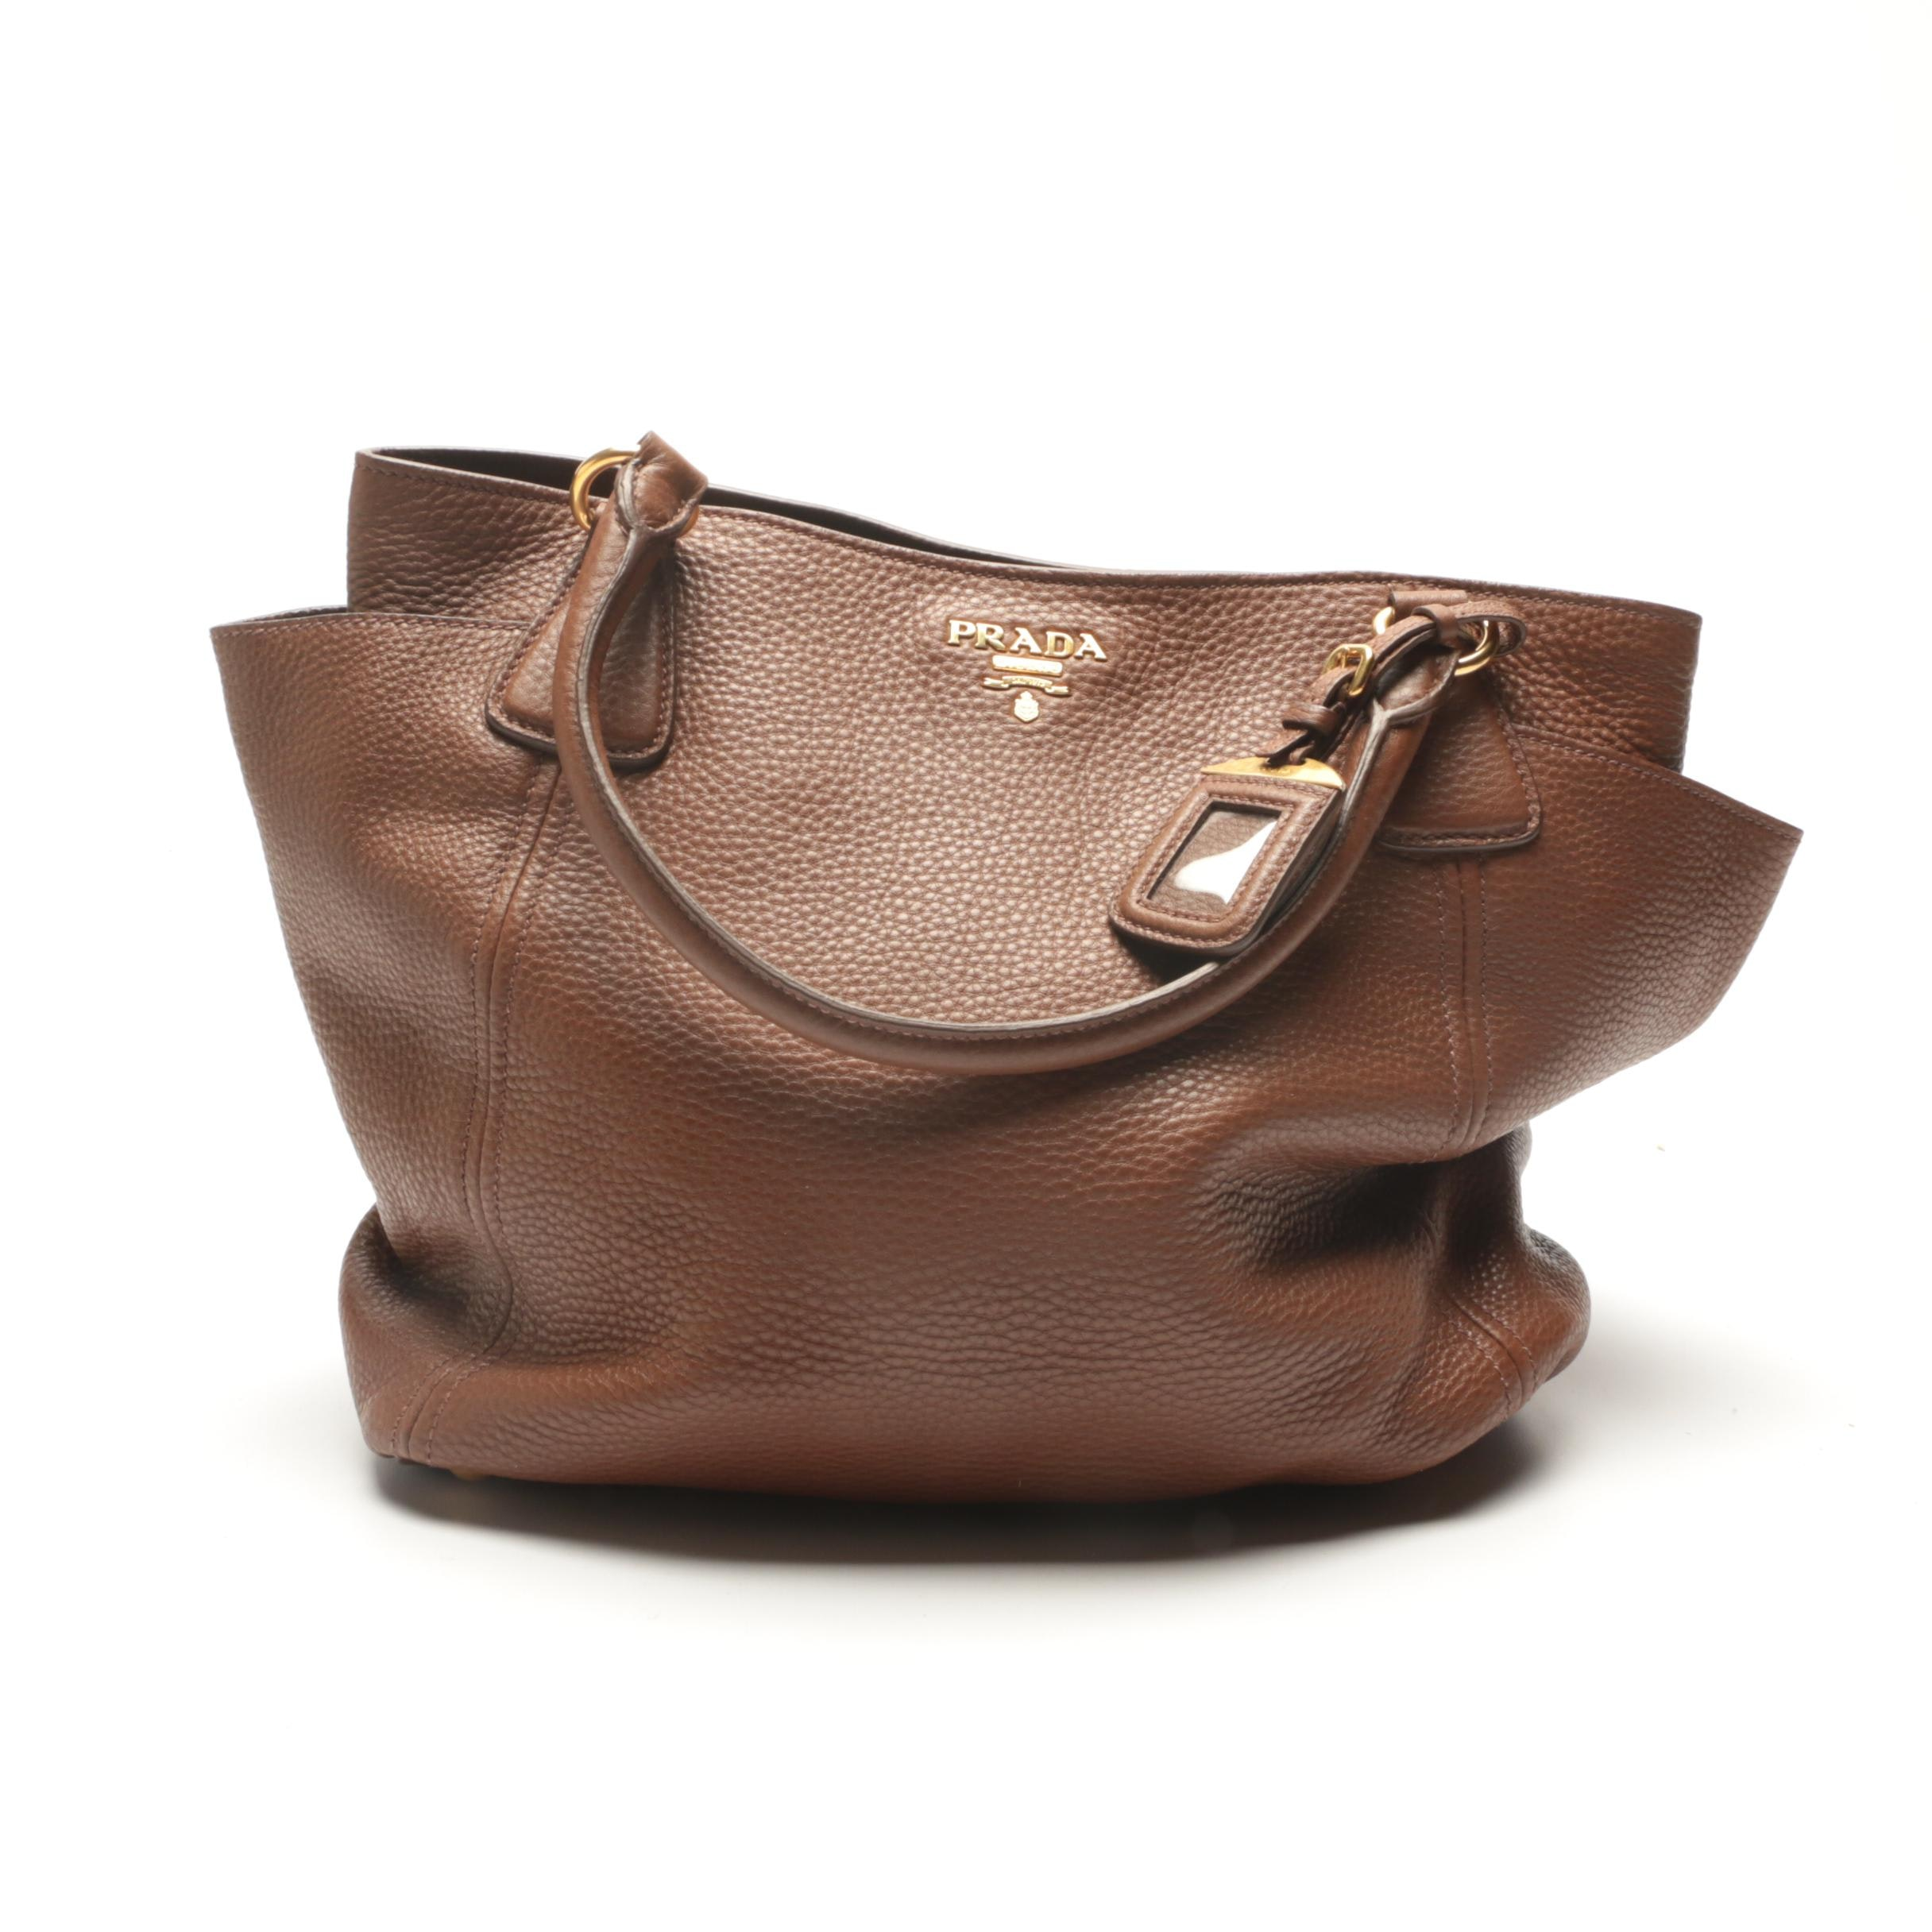 Prada Brown Pebbled Leather Satchel